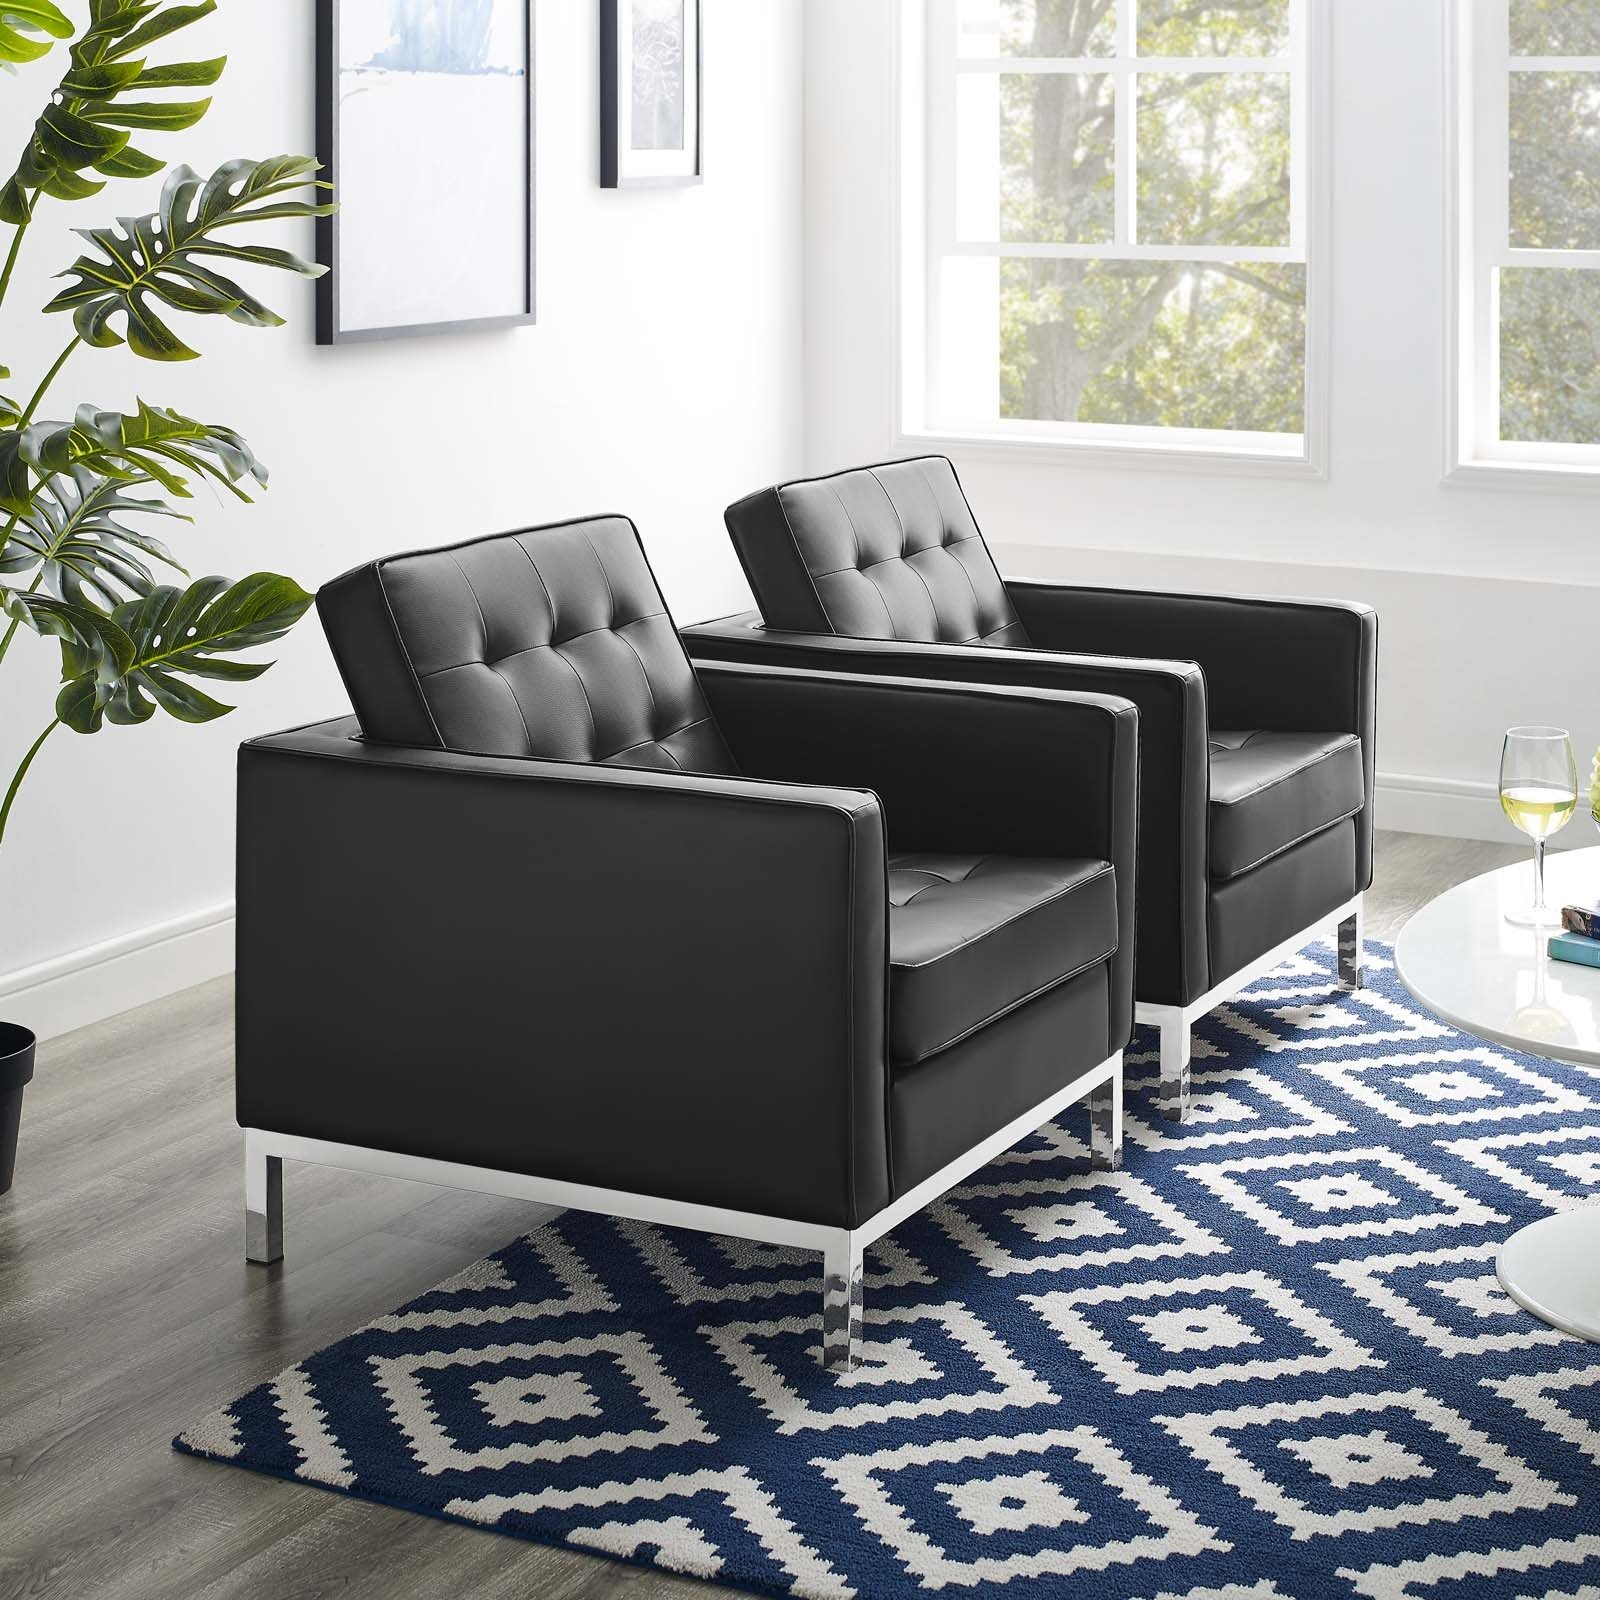 Loft Tufted Upholstered Faux Leather Armchair Set of 2 in Silver Black